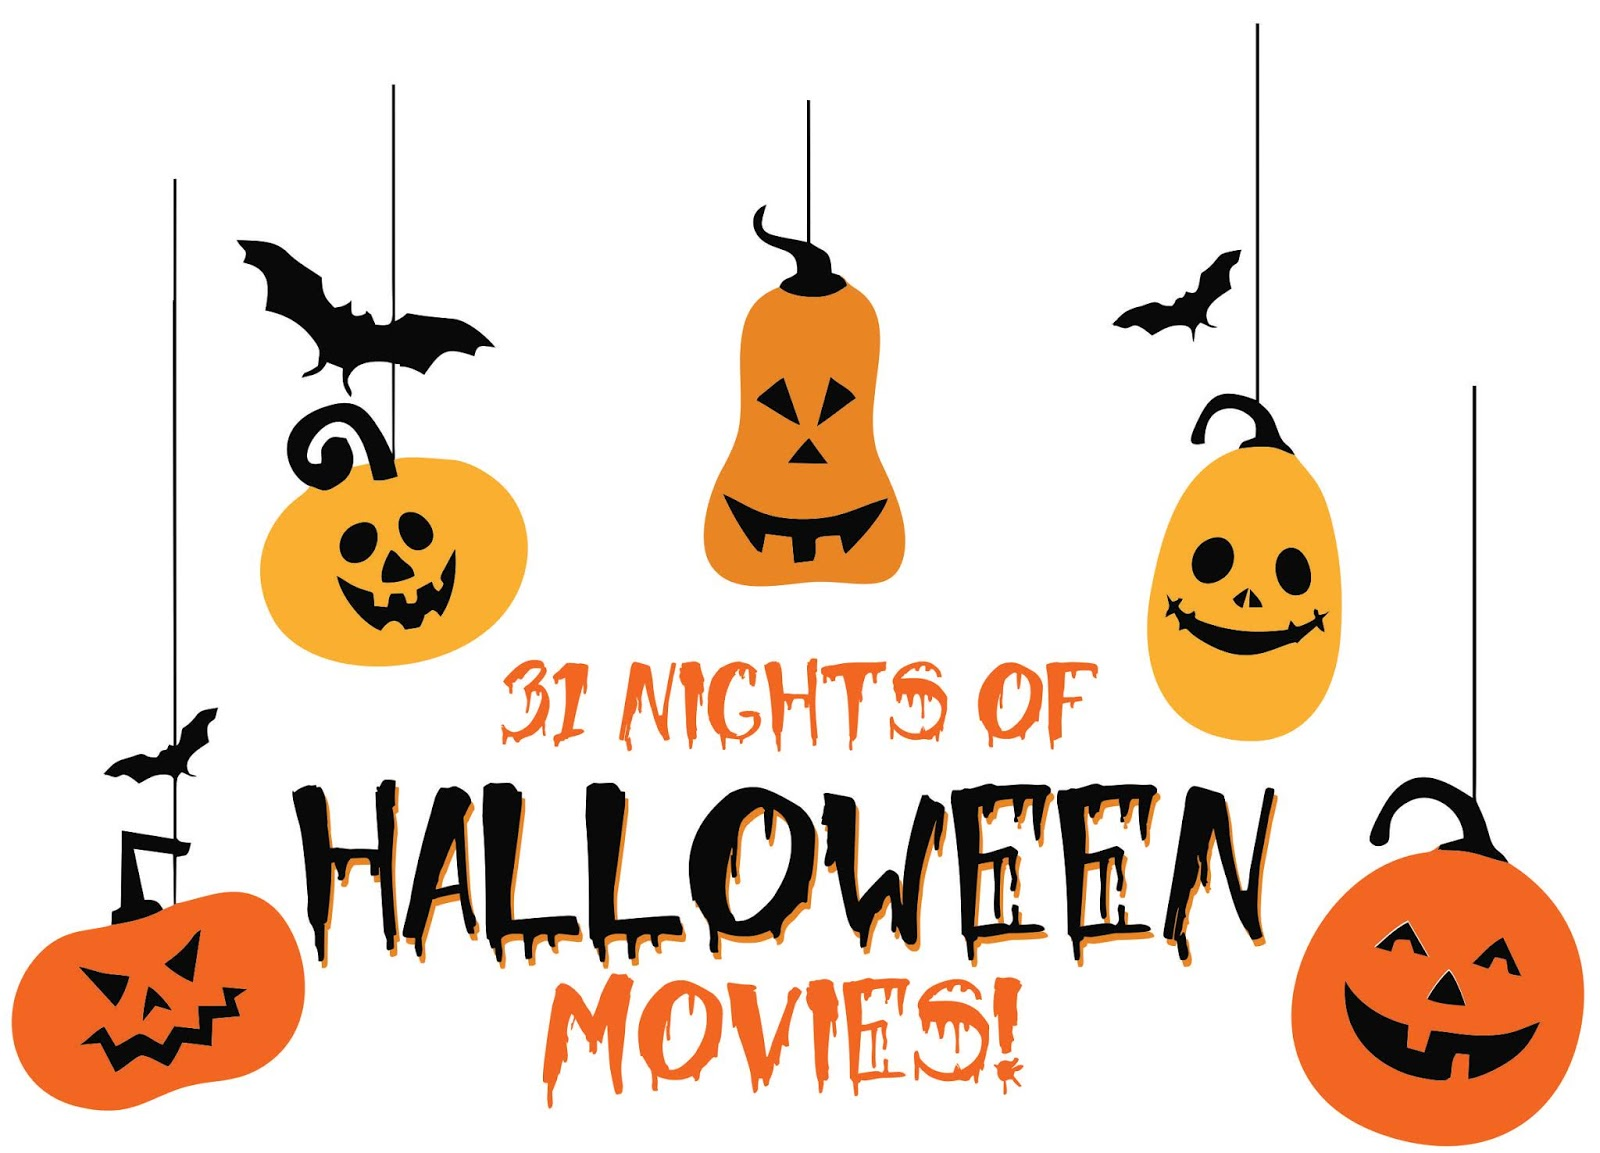 31 nights of halloween movies - peppermintheart